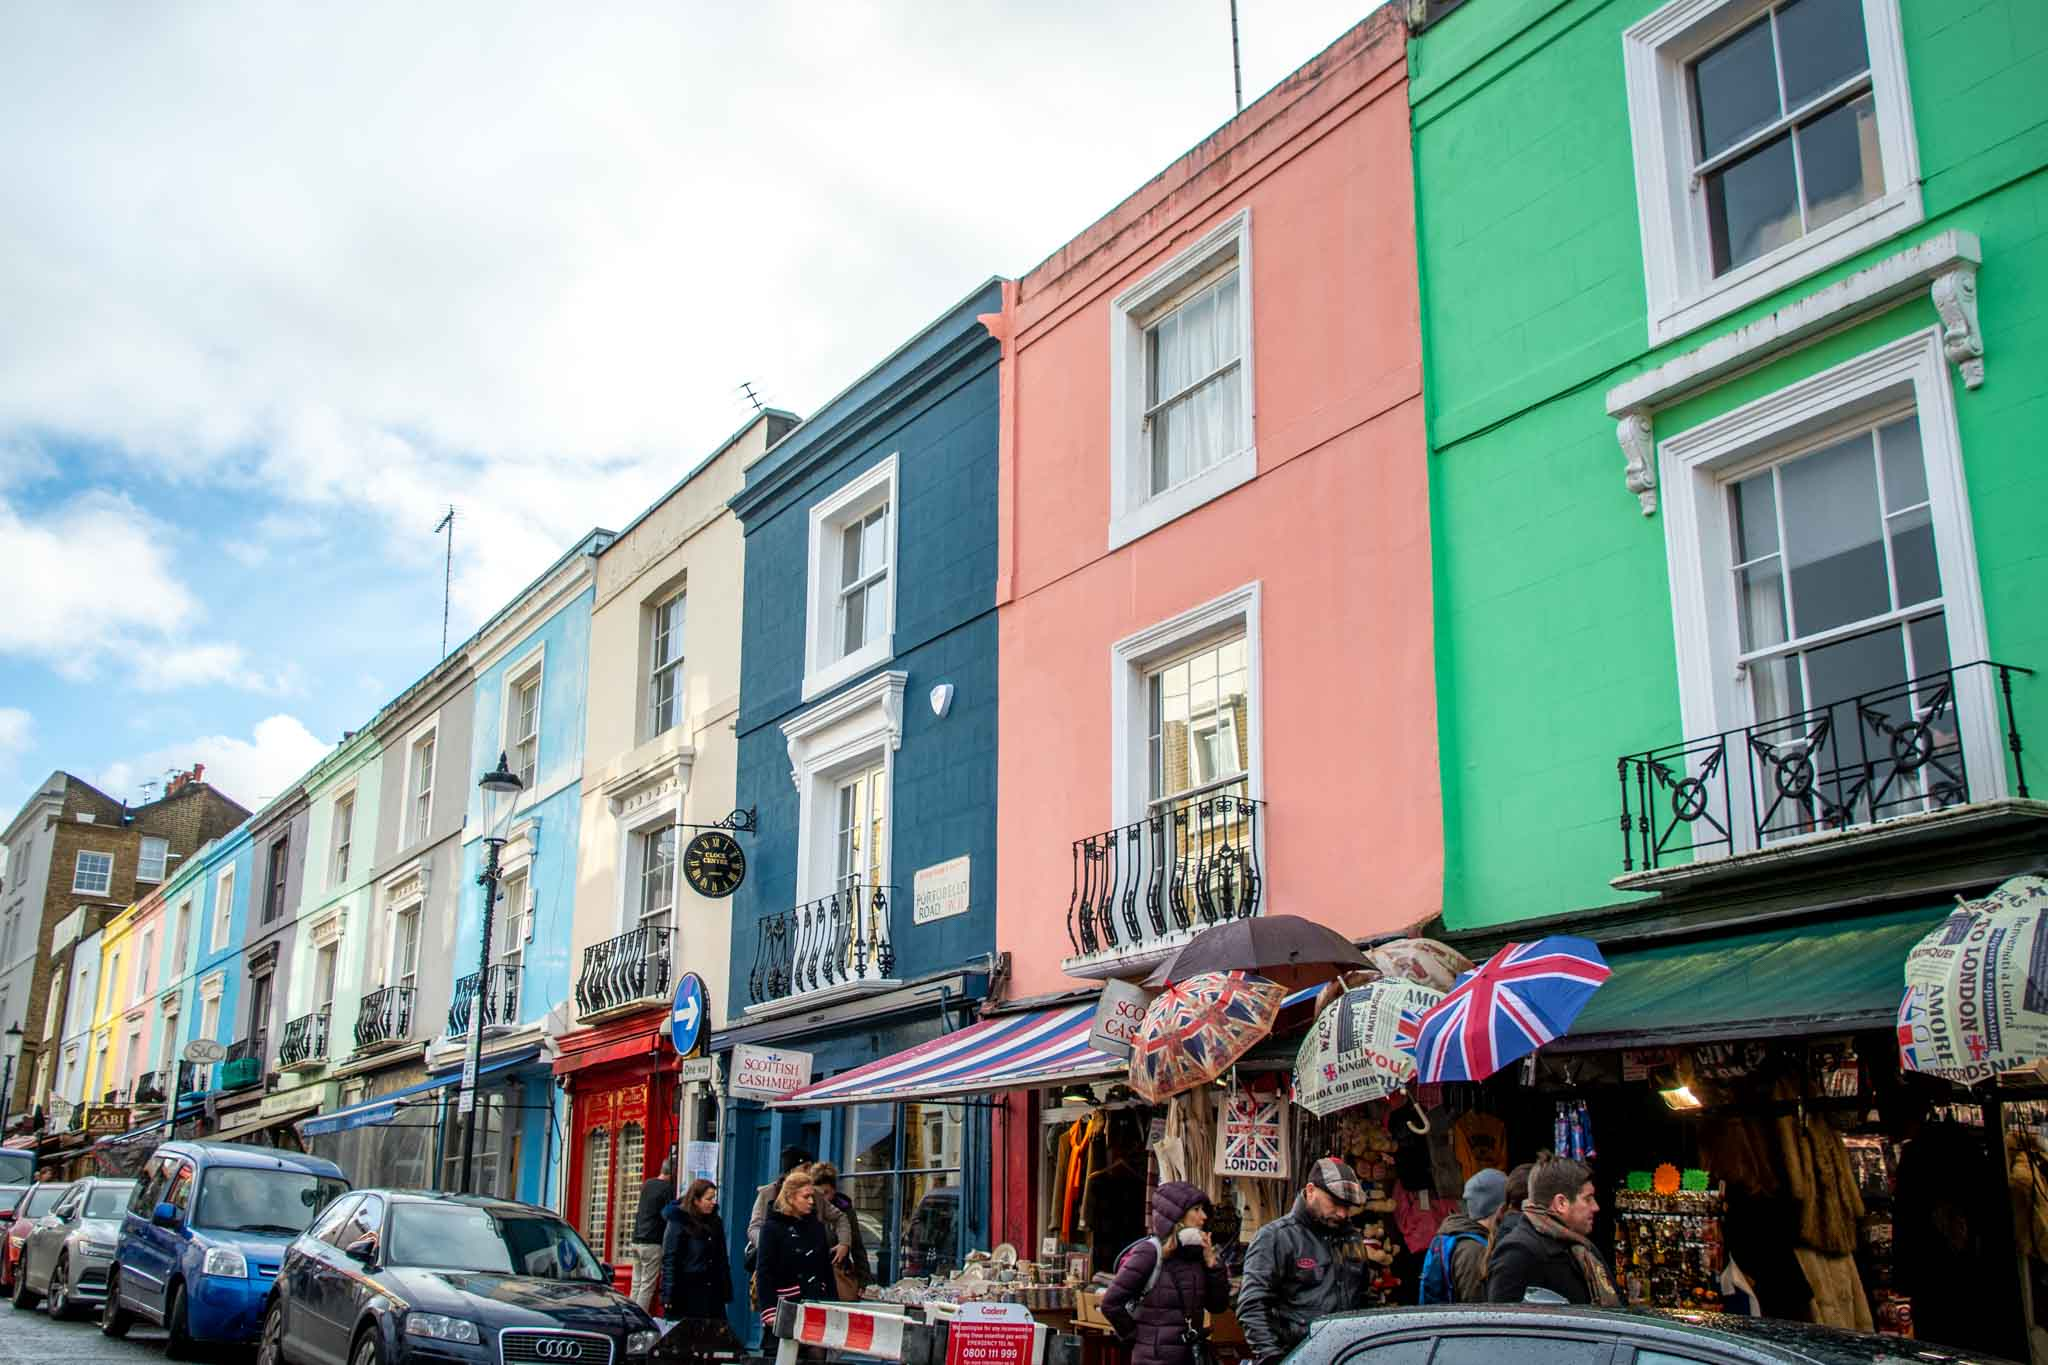 People walking by a row of colorful buildings on Portobello Road in Notting Hill